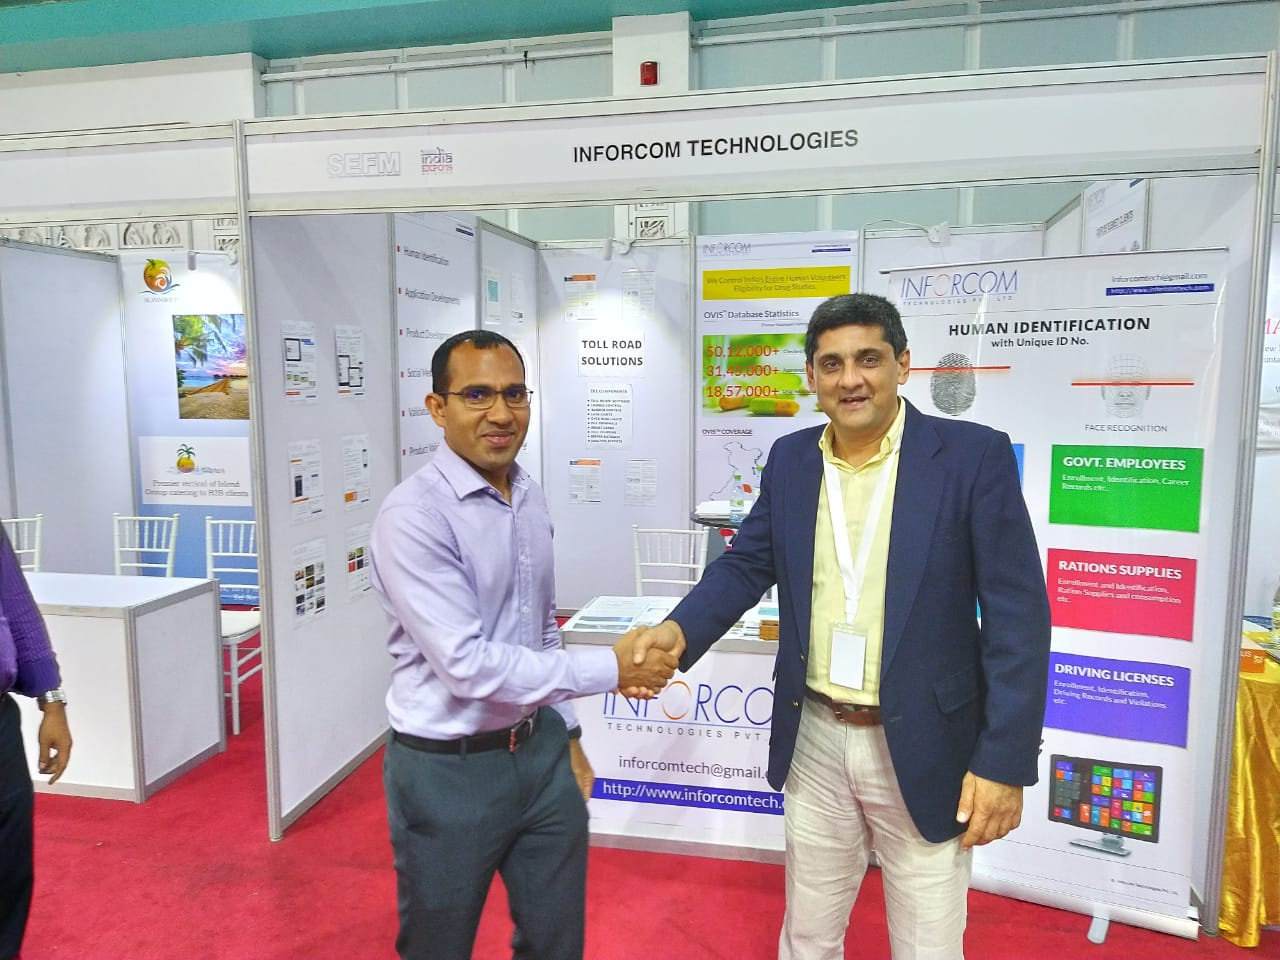 IT minister, Maldives at  #Inforcom stall - #IndiaExpo 19 Conclave at #Maldives.